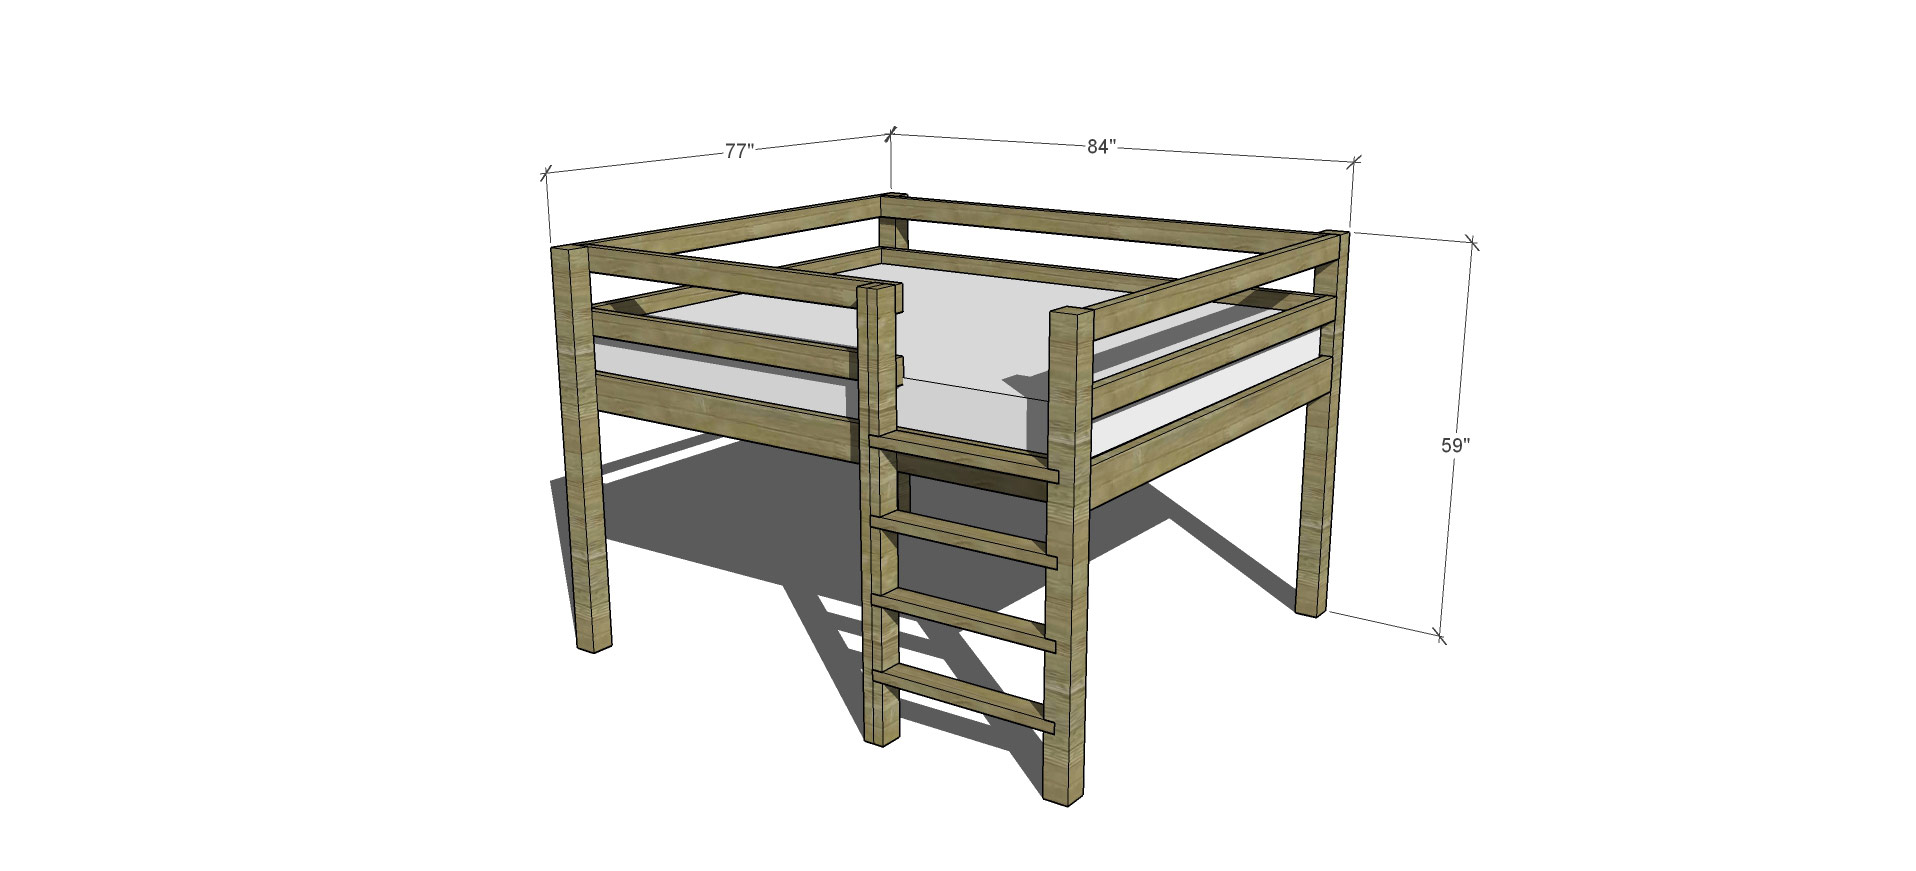 Stunning Dimensions for The Design Confidential Free DIY Furniture Plans How to Build a Queen